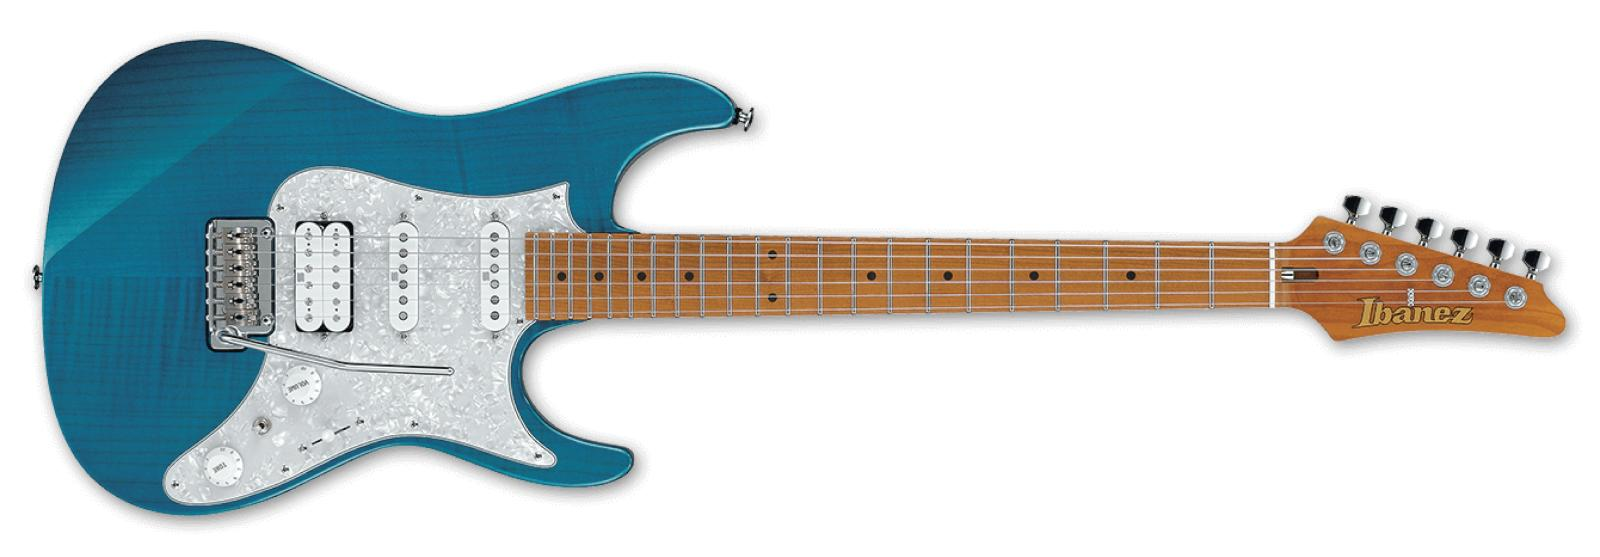 【即納できます】【送料無料】 Ibanez Prestige AZ2204F TAB (Transparent Aqua Blue) Made in Japan アイバニーズ【国産】